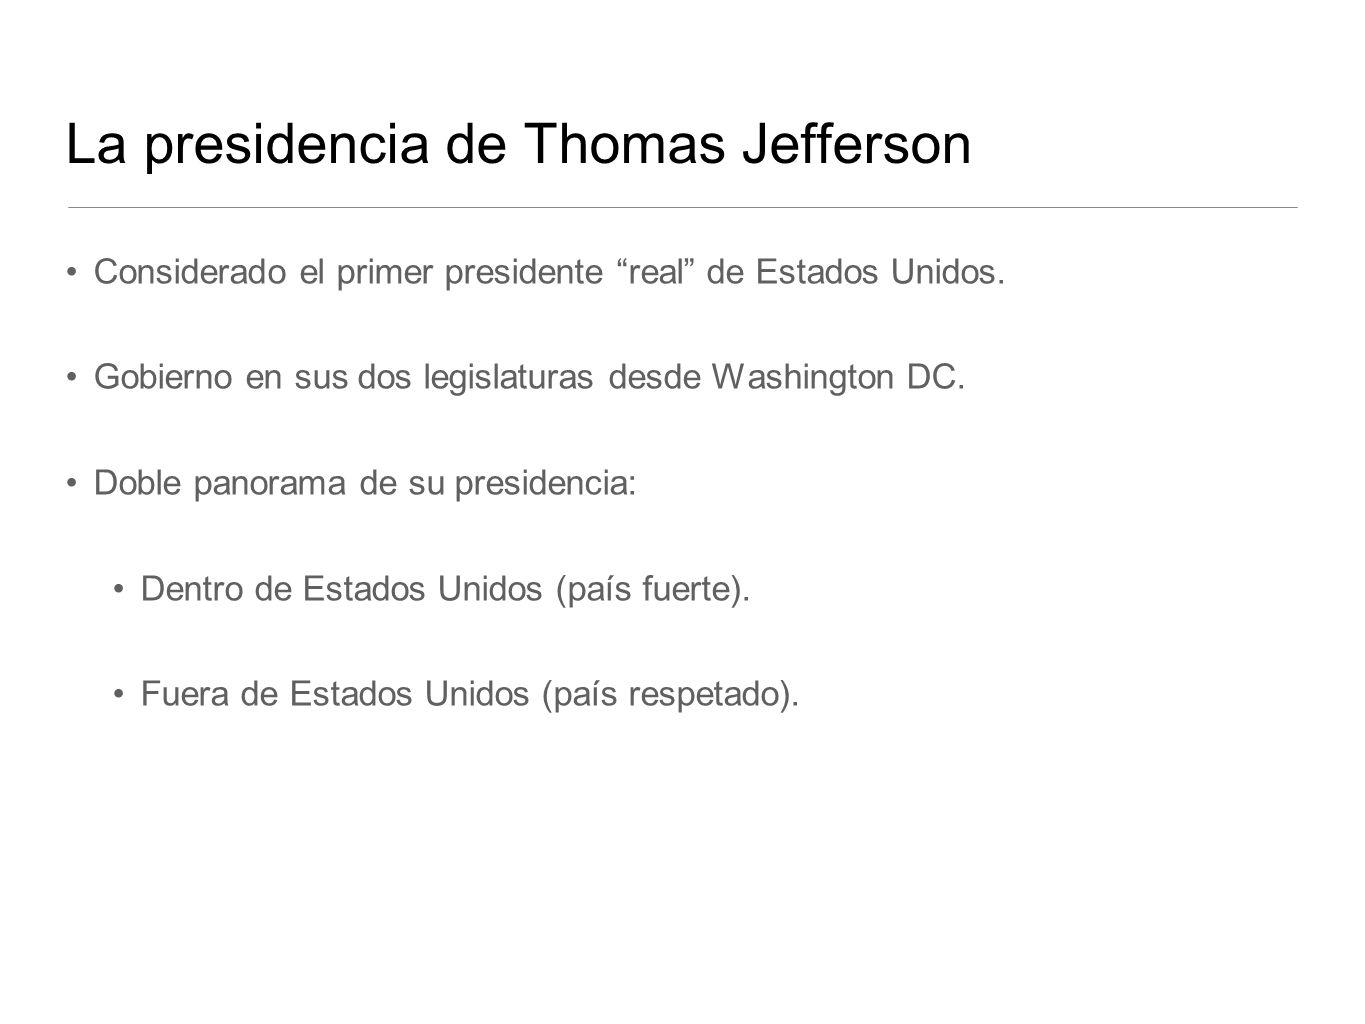 La presidencia de Thomas Jefferson